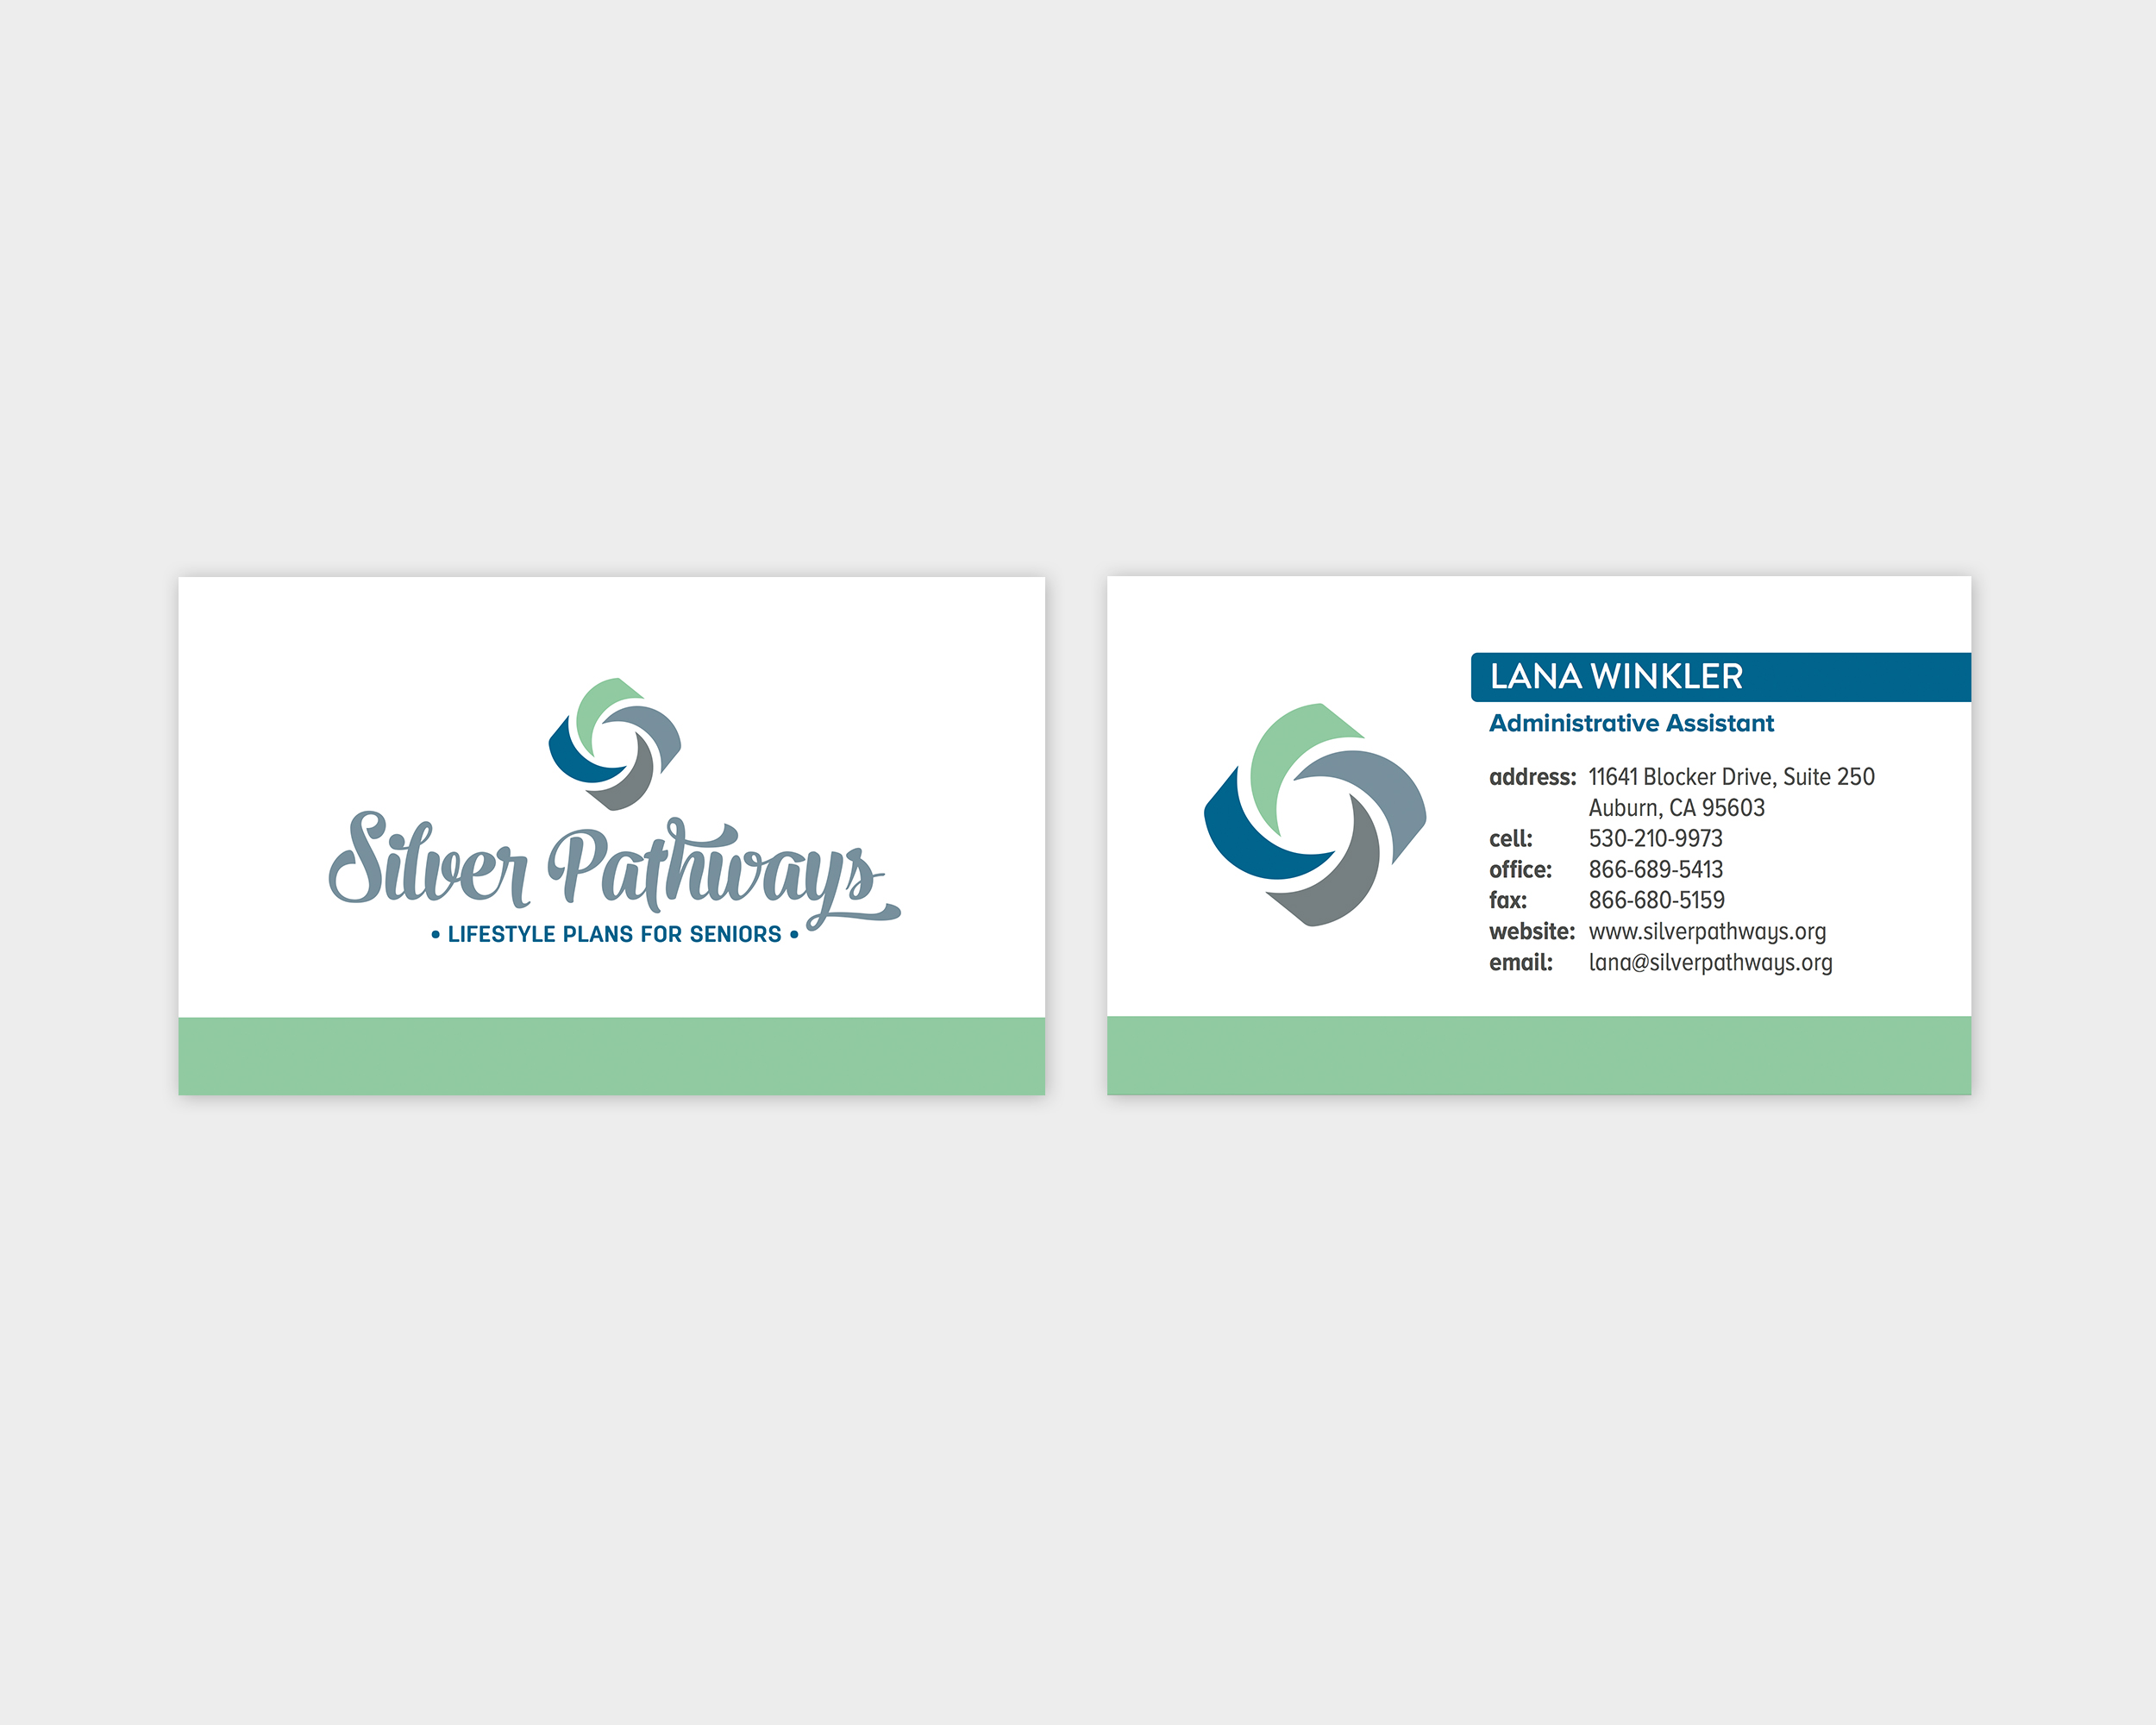 Silver Pathways Business Card Design